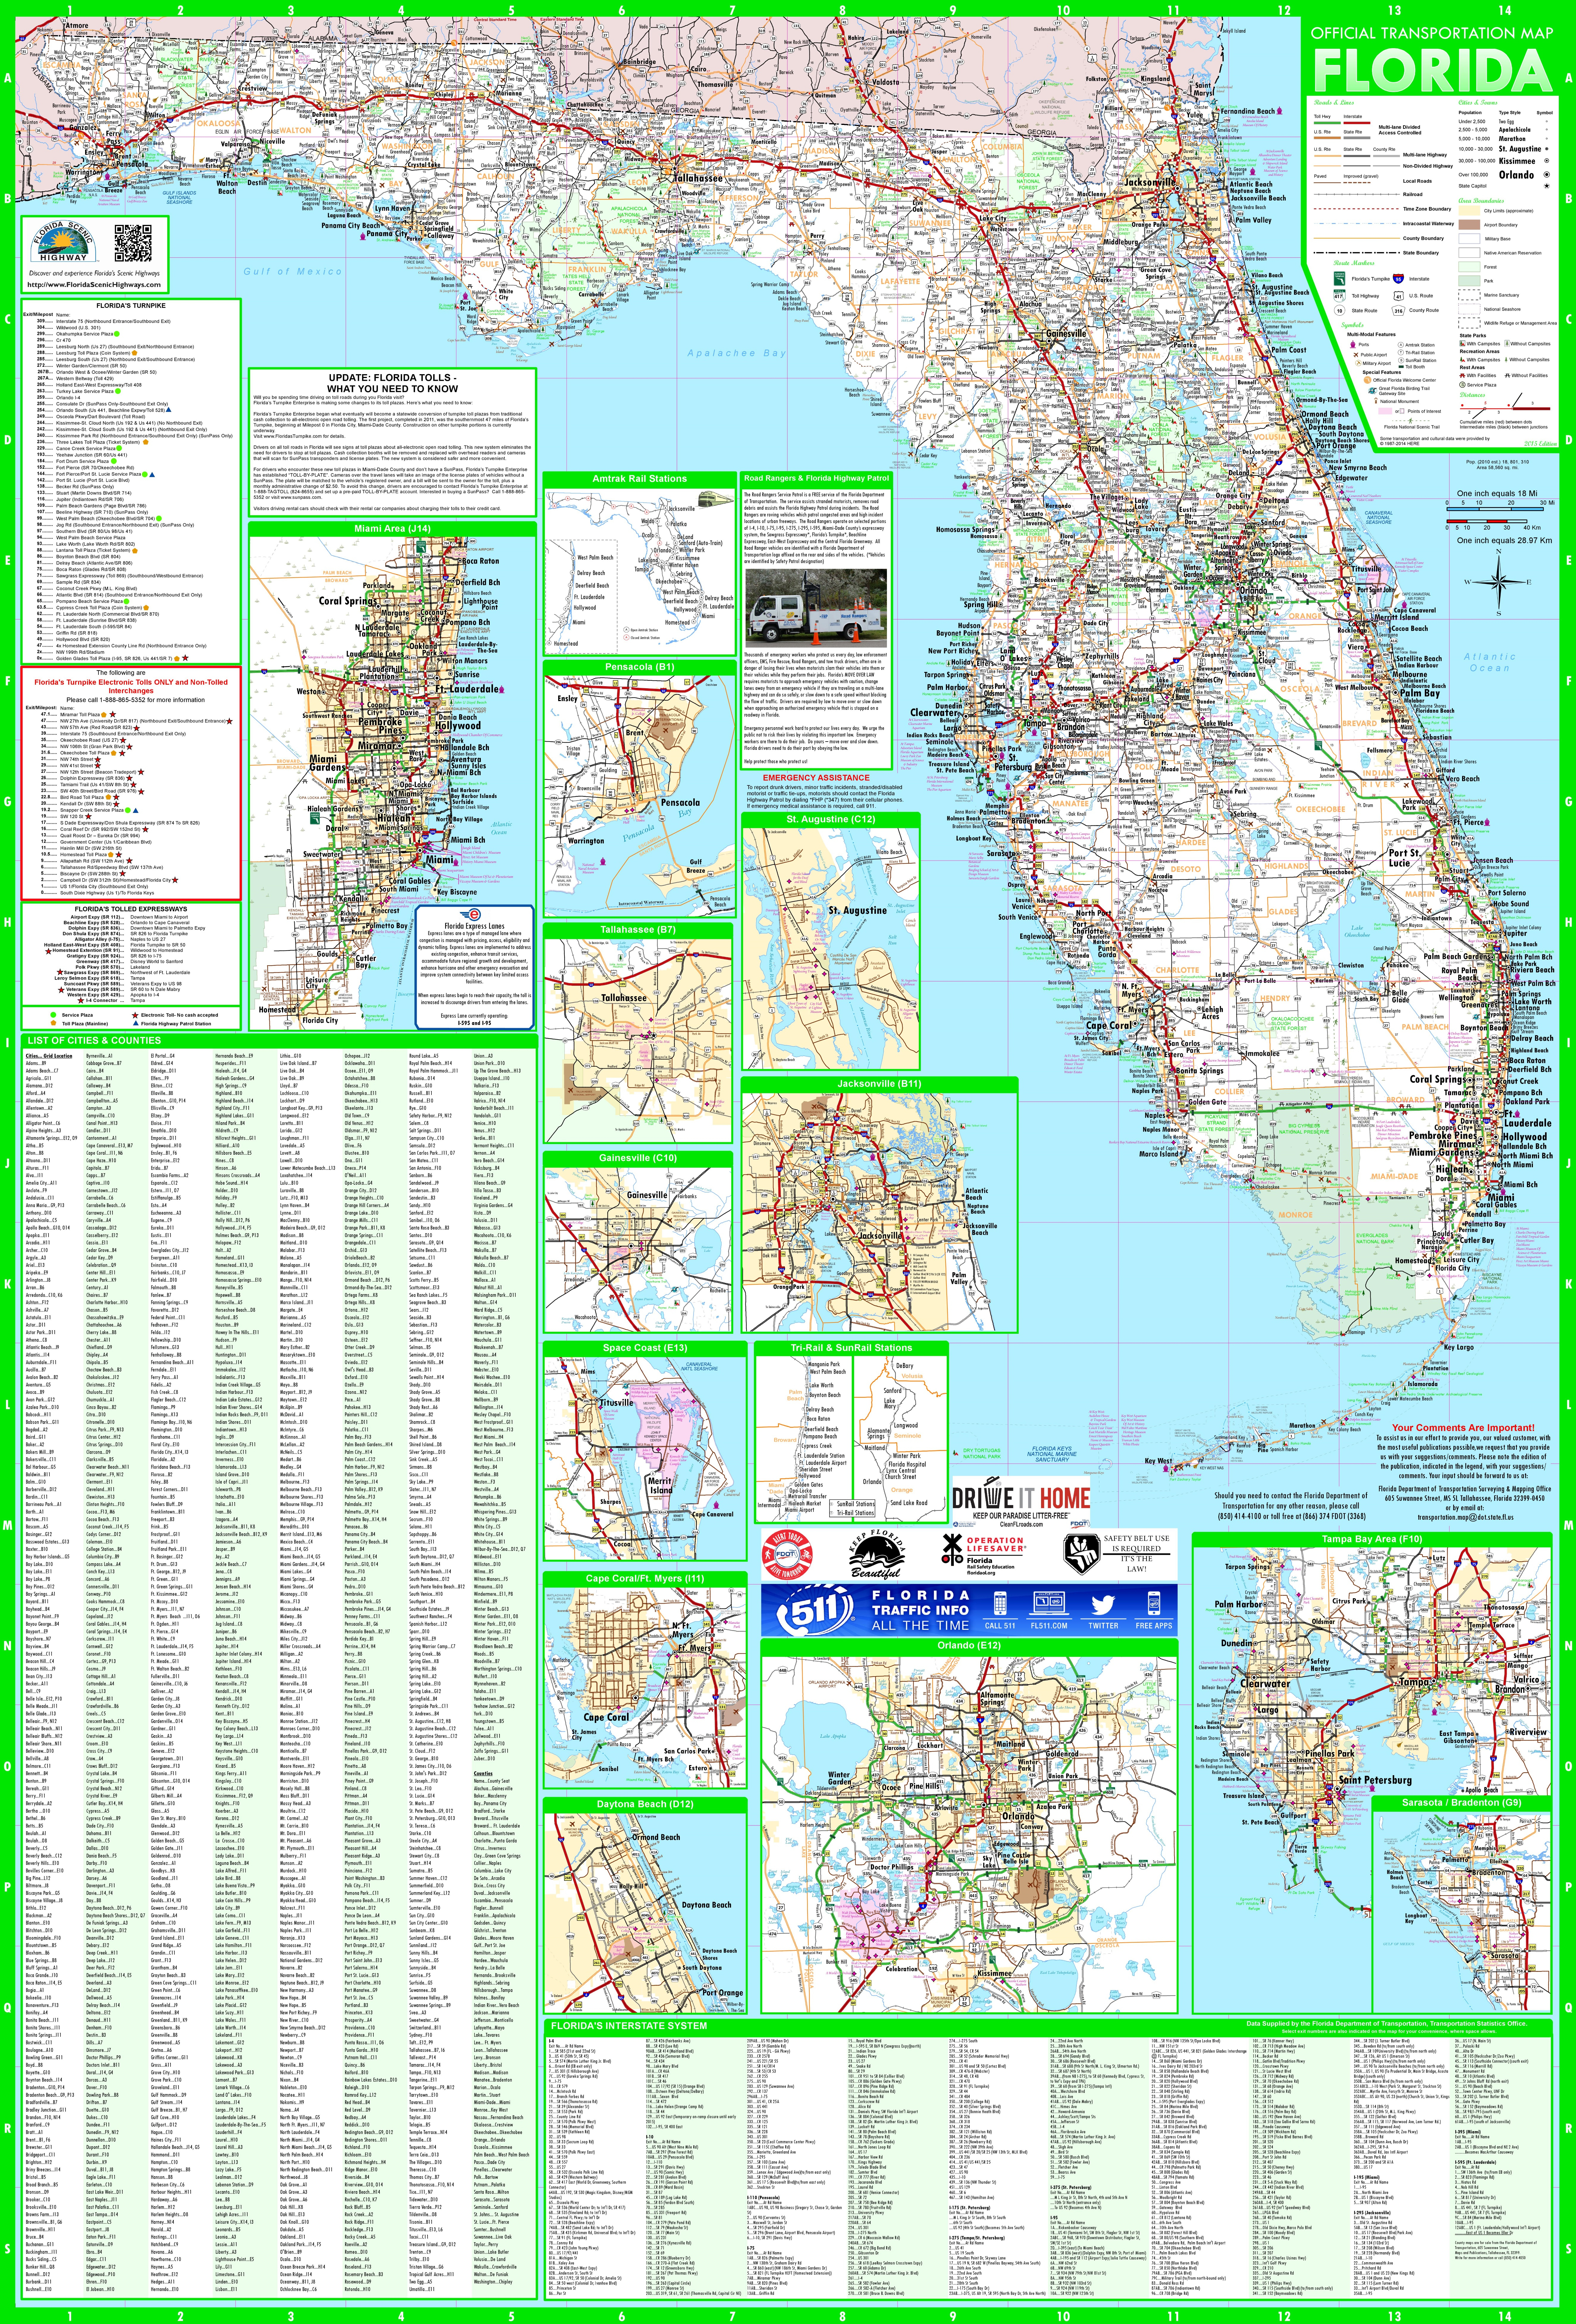 Florida State Maps | Usa | Maps Of Florida (Fl) - Map Of East Coast Of Florida Cities